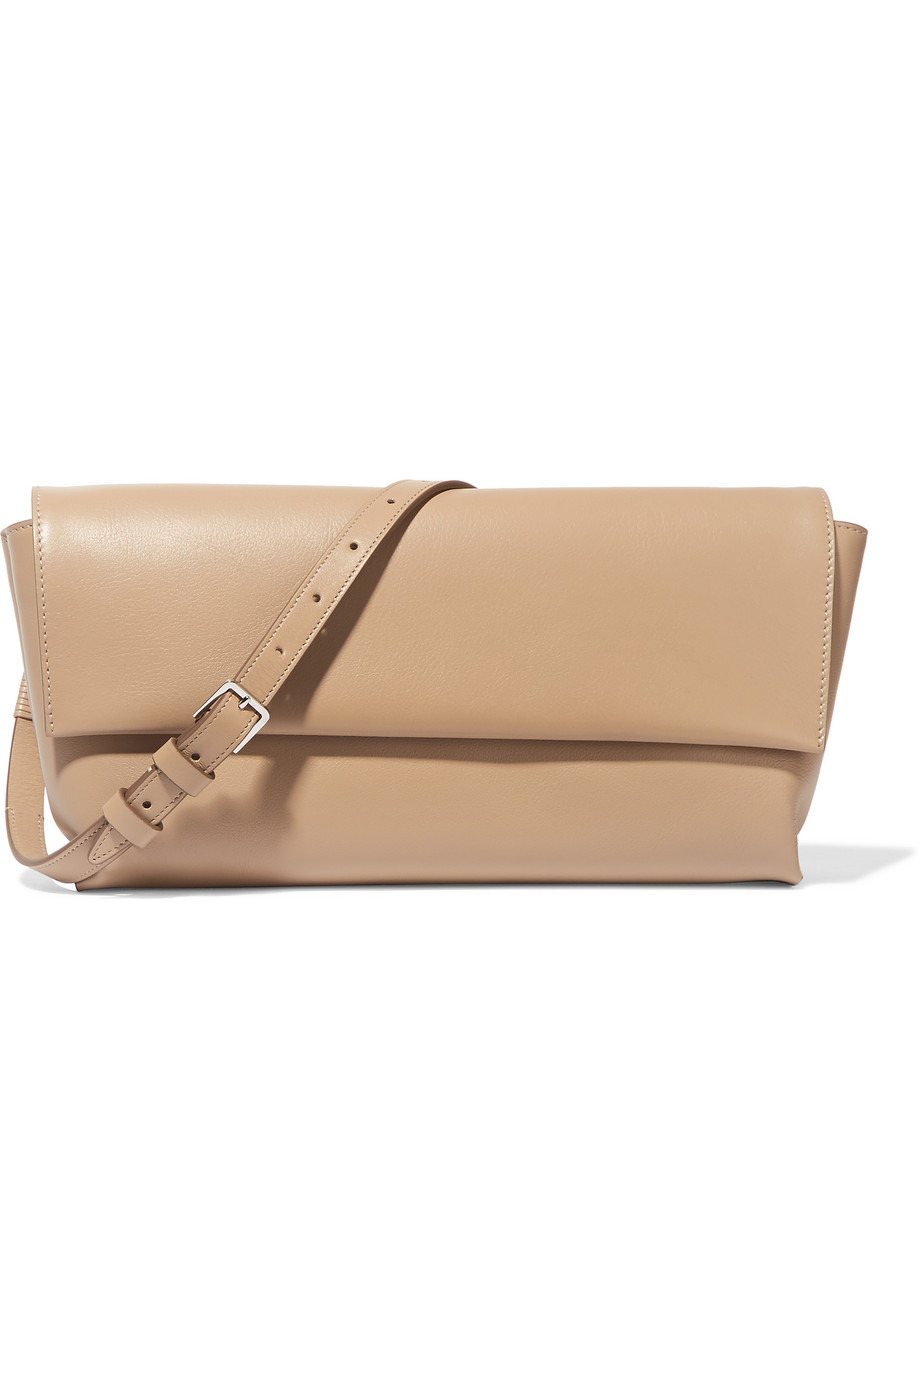 The Row Flap Small Leather Shoulder Bag, Beige, Women's